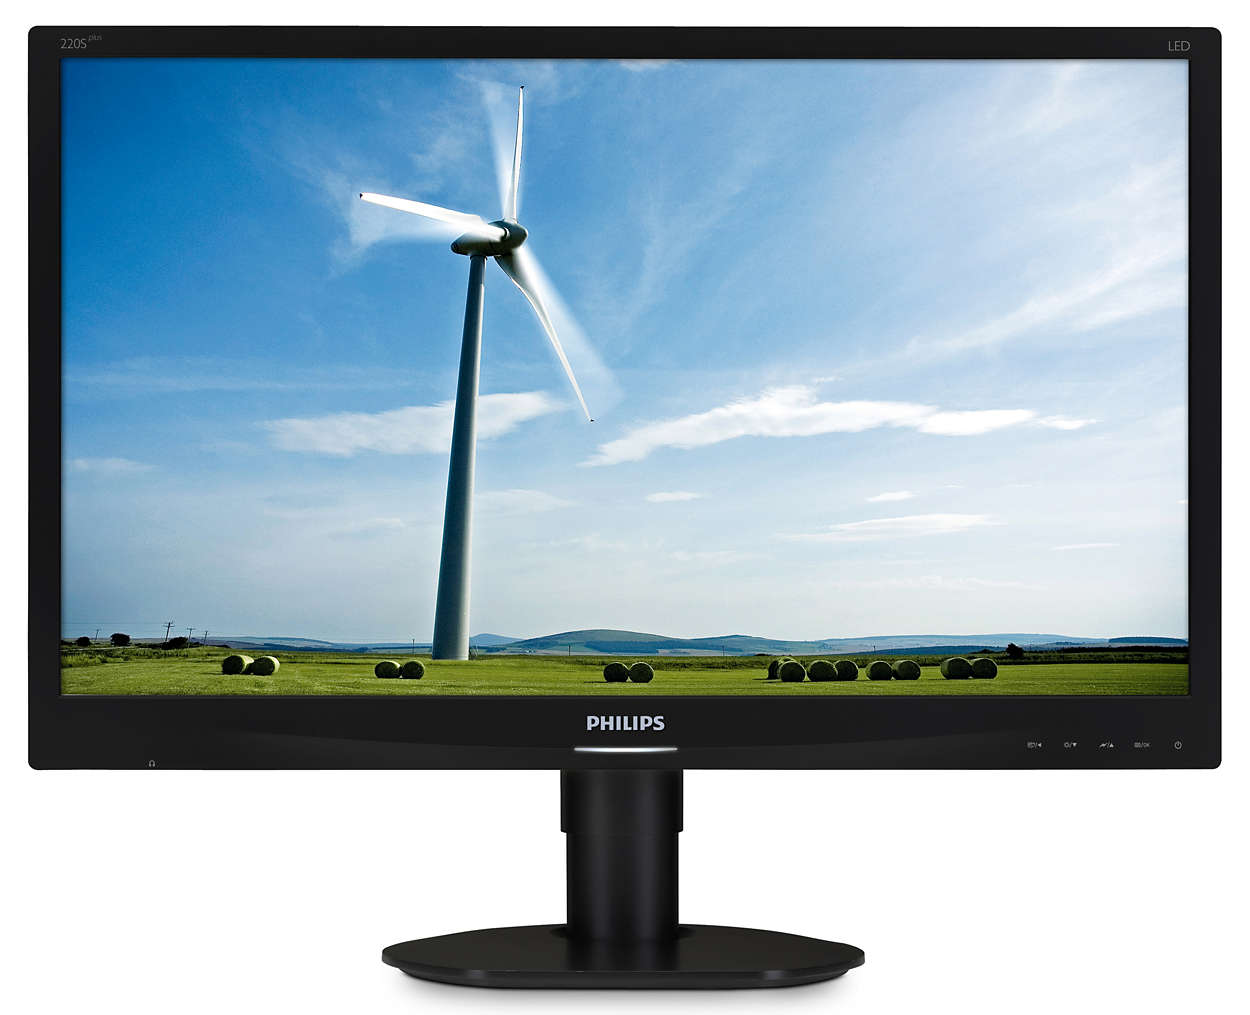 Monitor LED Philips 220S4LYCB 22 inch WSXGA Black